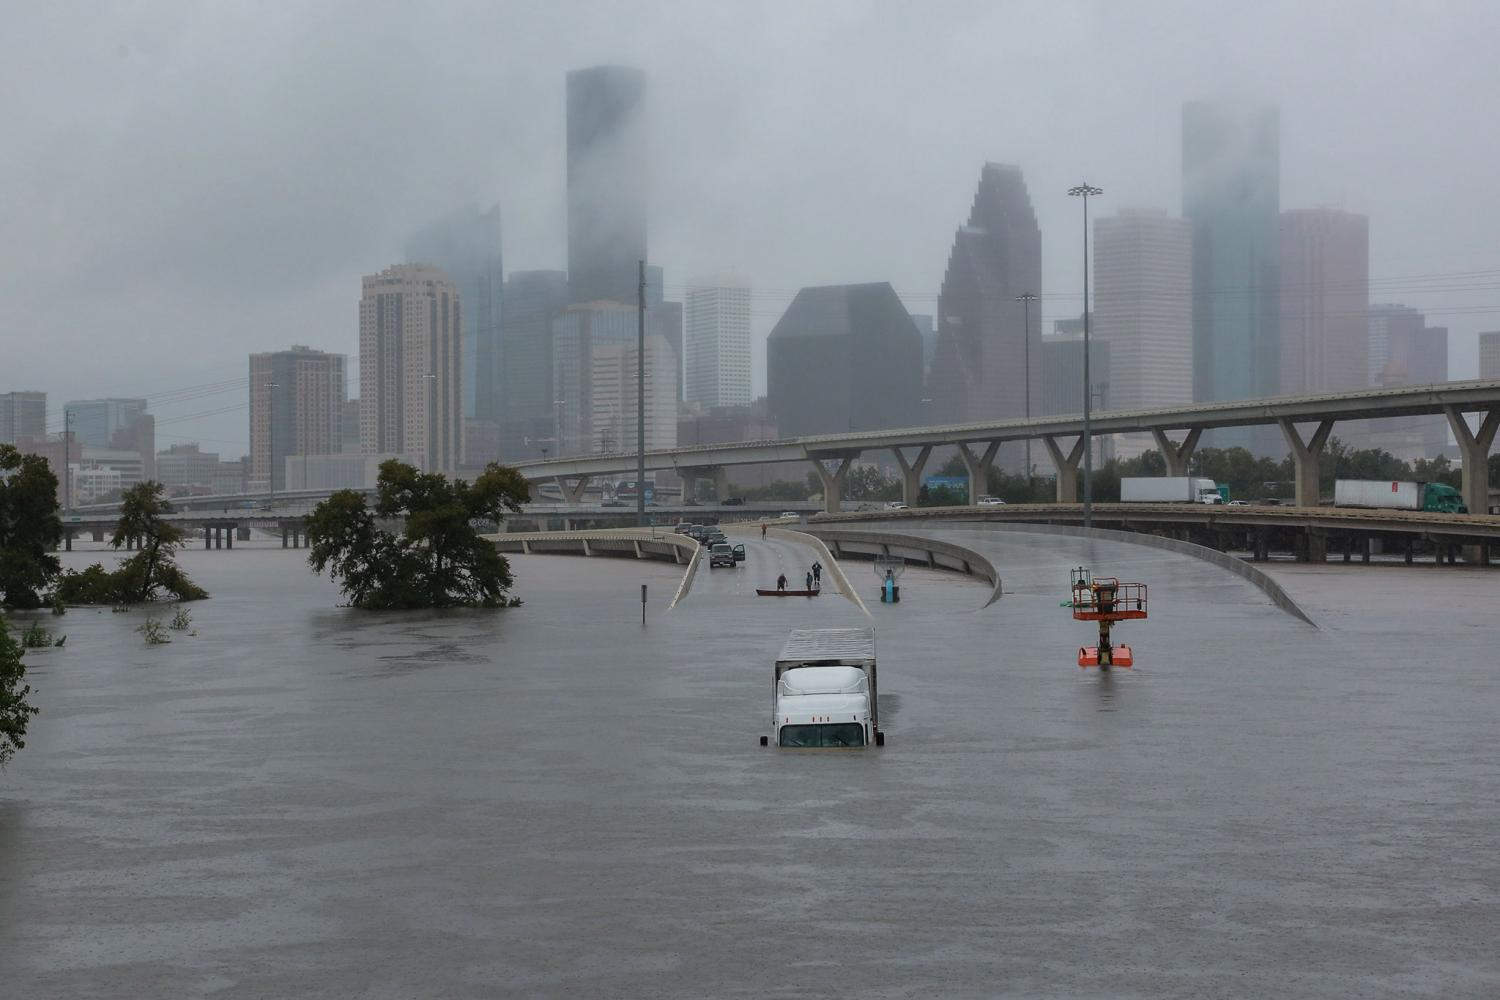 In+Wake+of+Disaster+in+Texas%2C+West+Teachers+and+Students+Extend+a+Helping+Hand